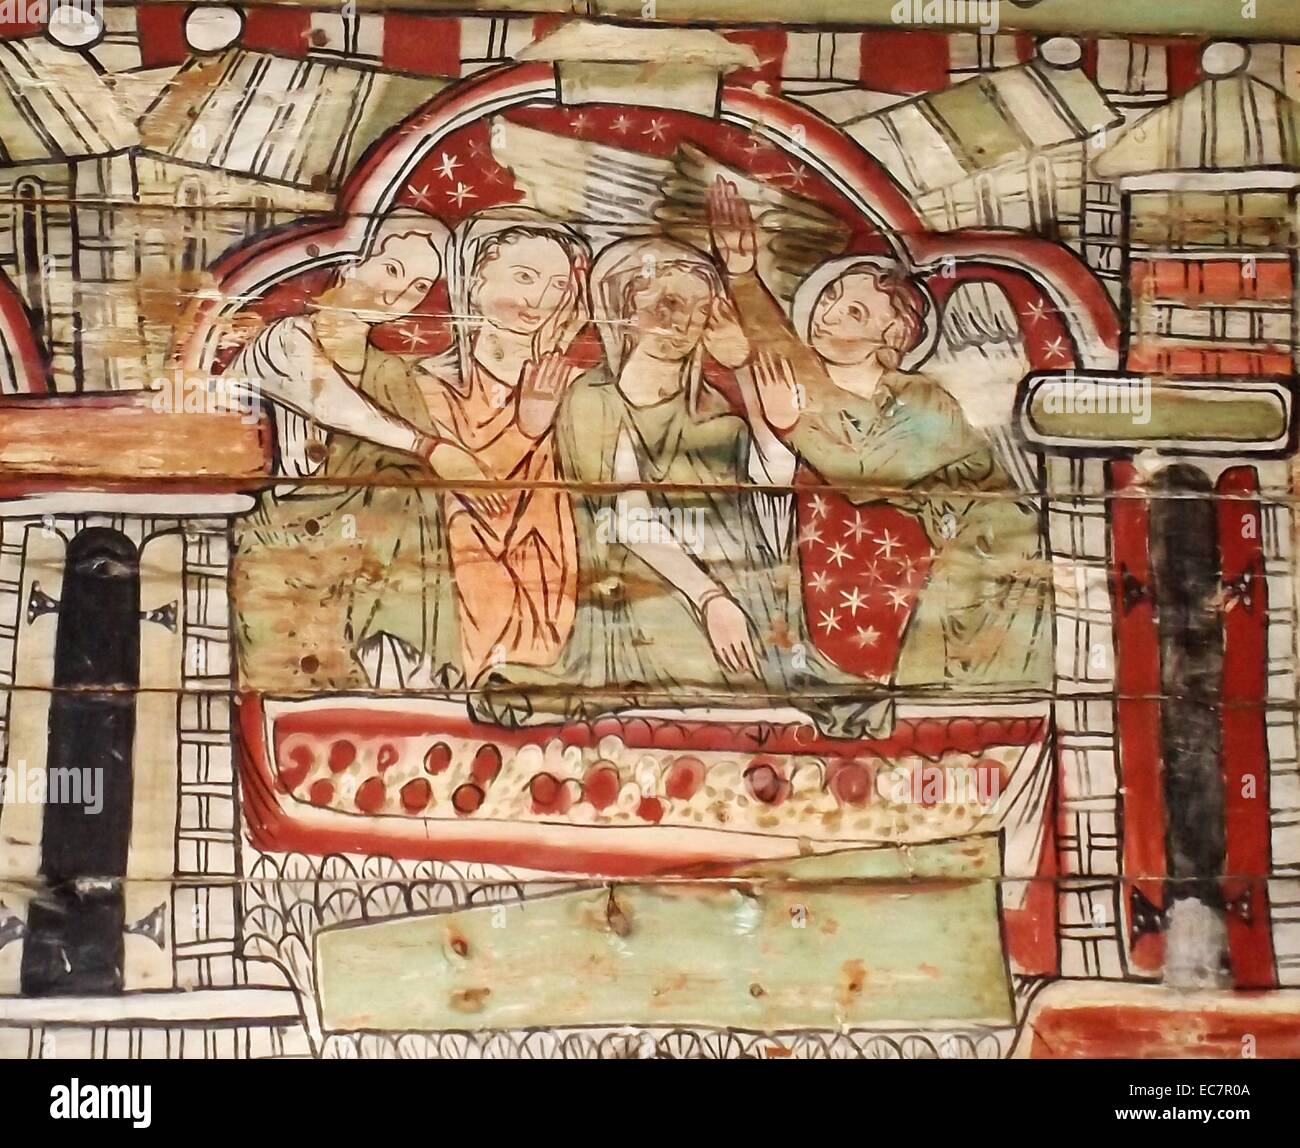 The ceiling panels preserved from a Norwegian Church dating to 1200 AD. The Annunciation to Mary is shown - Stock Image